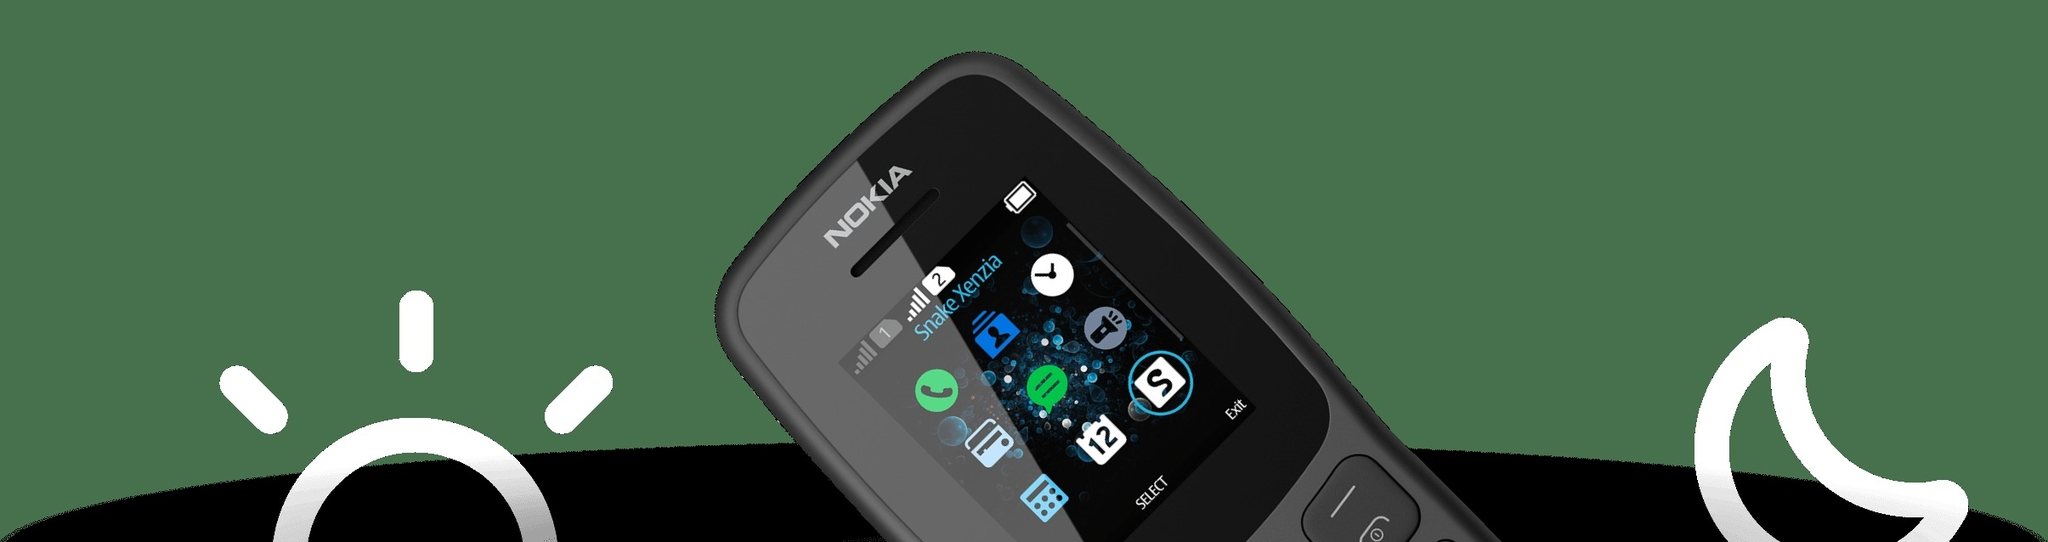 nokia_106-product_page-hardware-mobile.png